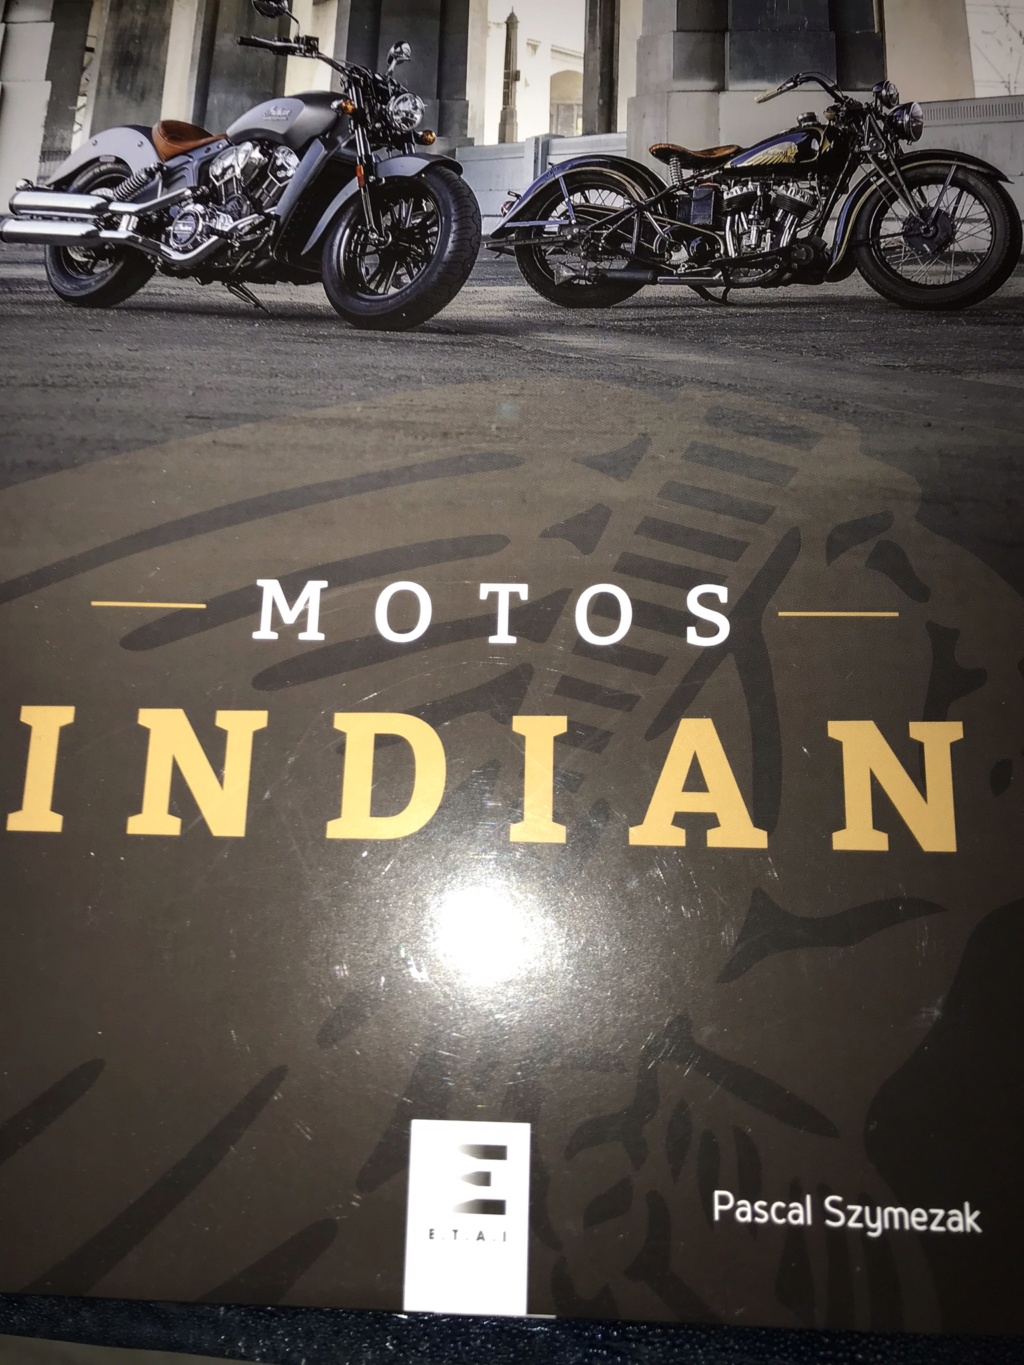 L'Histoire d'Indian - The Vintagent , the Early History of Indian (Part 2) Hedstrom Sets the Pace C930d310